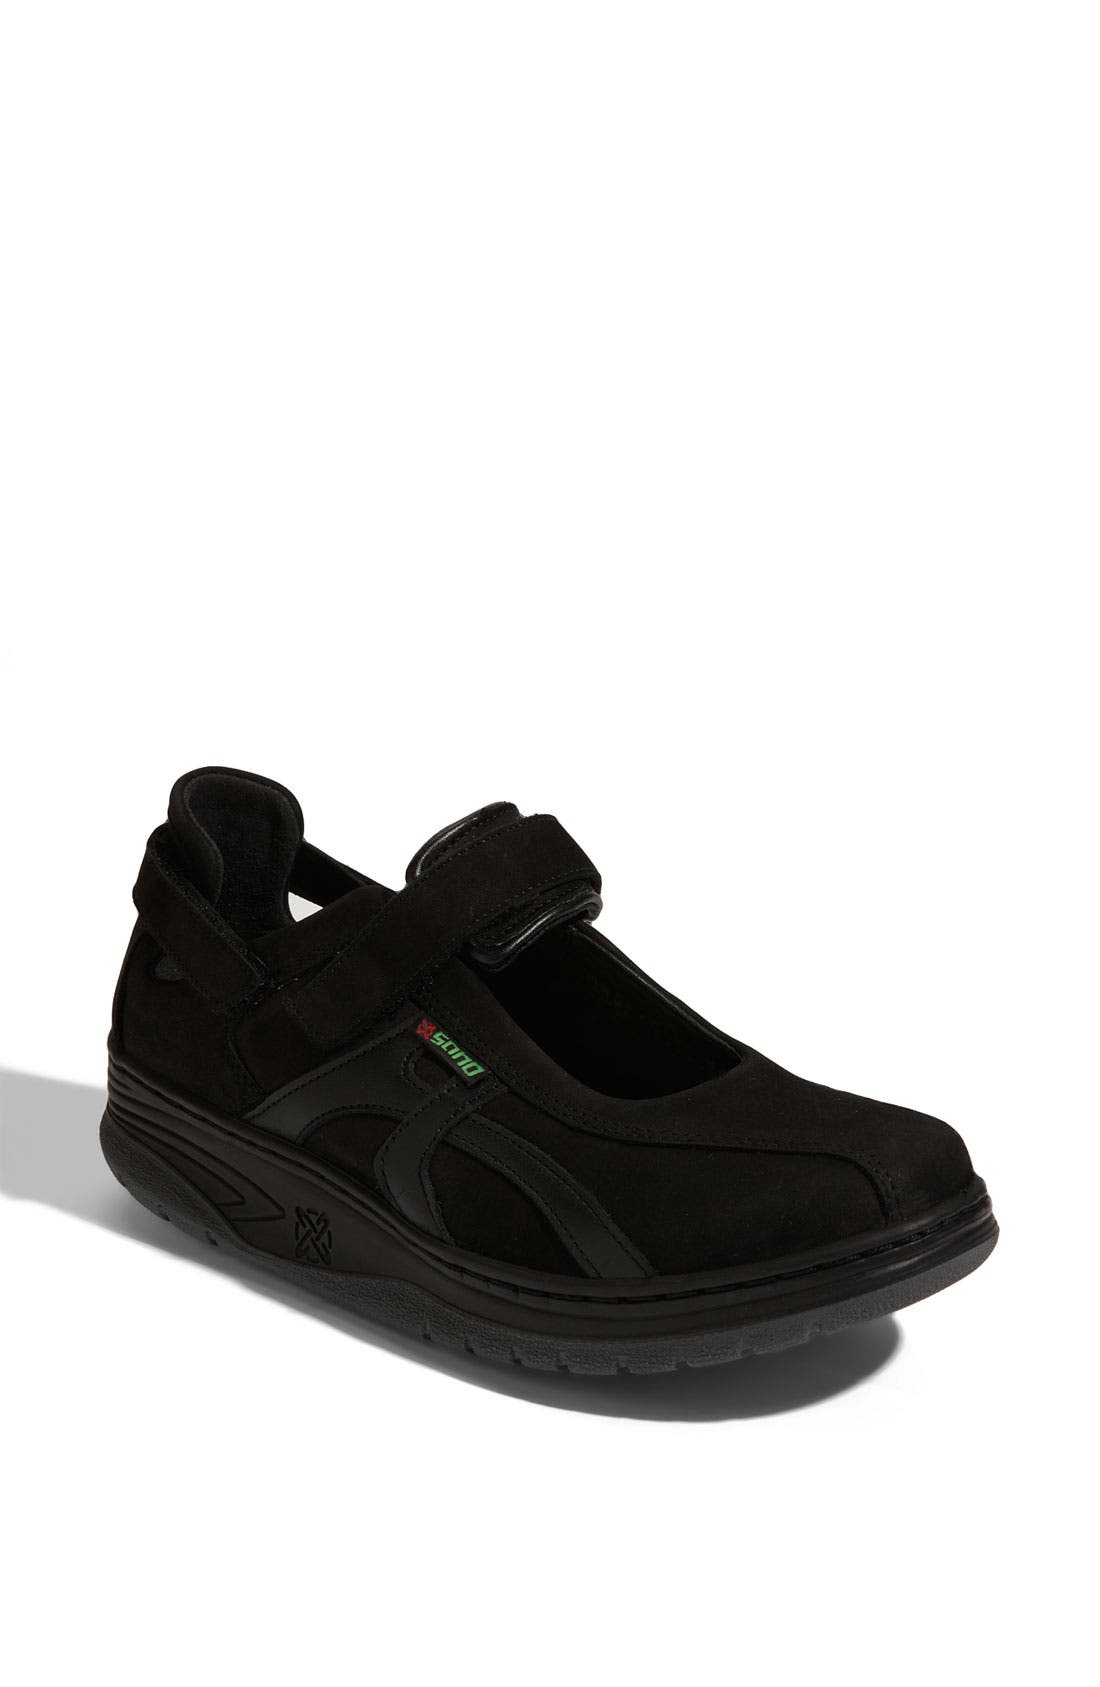 Sano by Mephisto 'Excess' Walking Shoe,                             Main thumbnail 3, color,